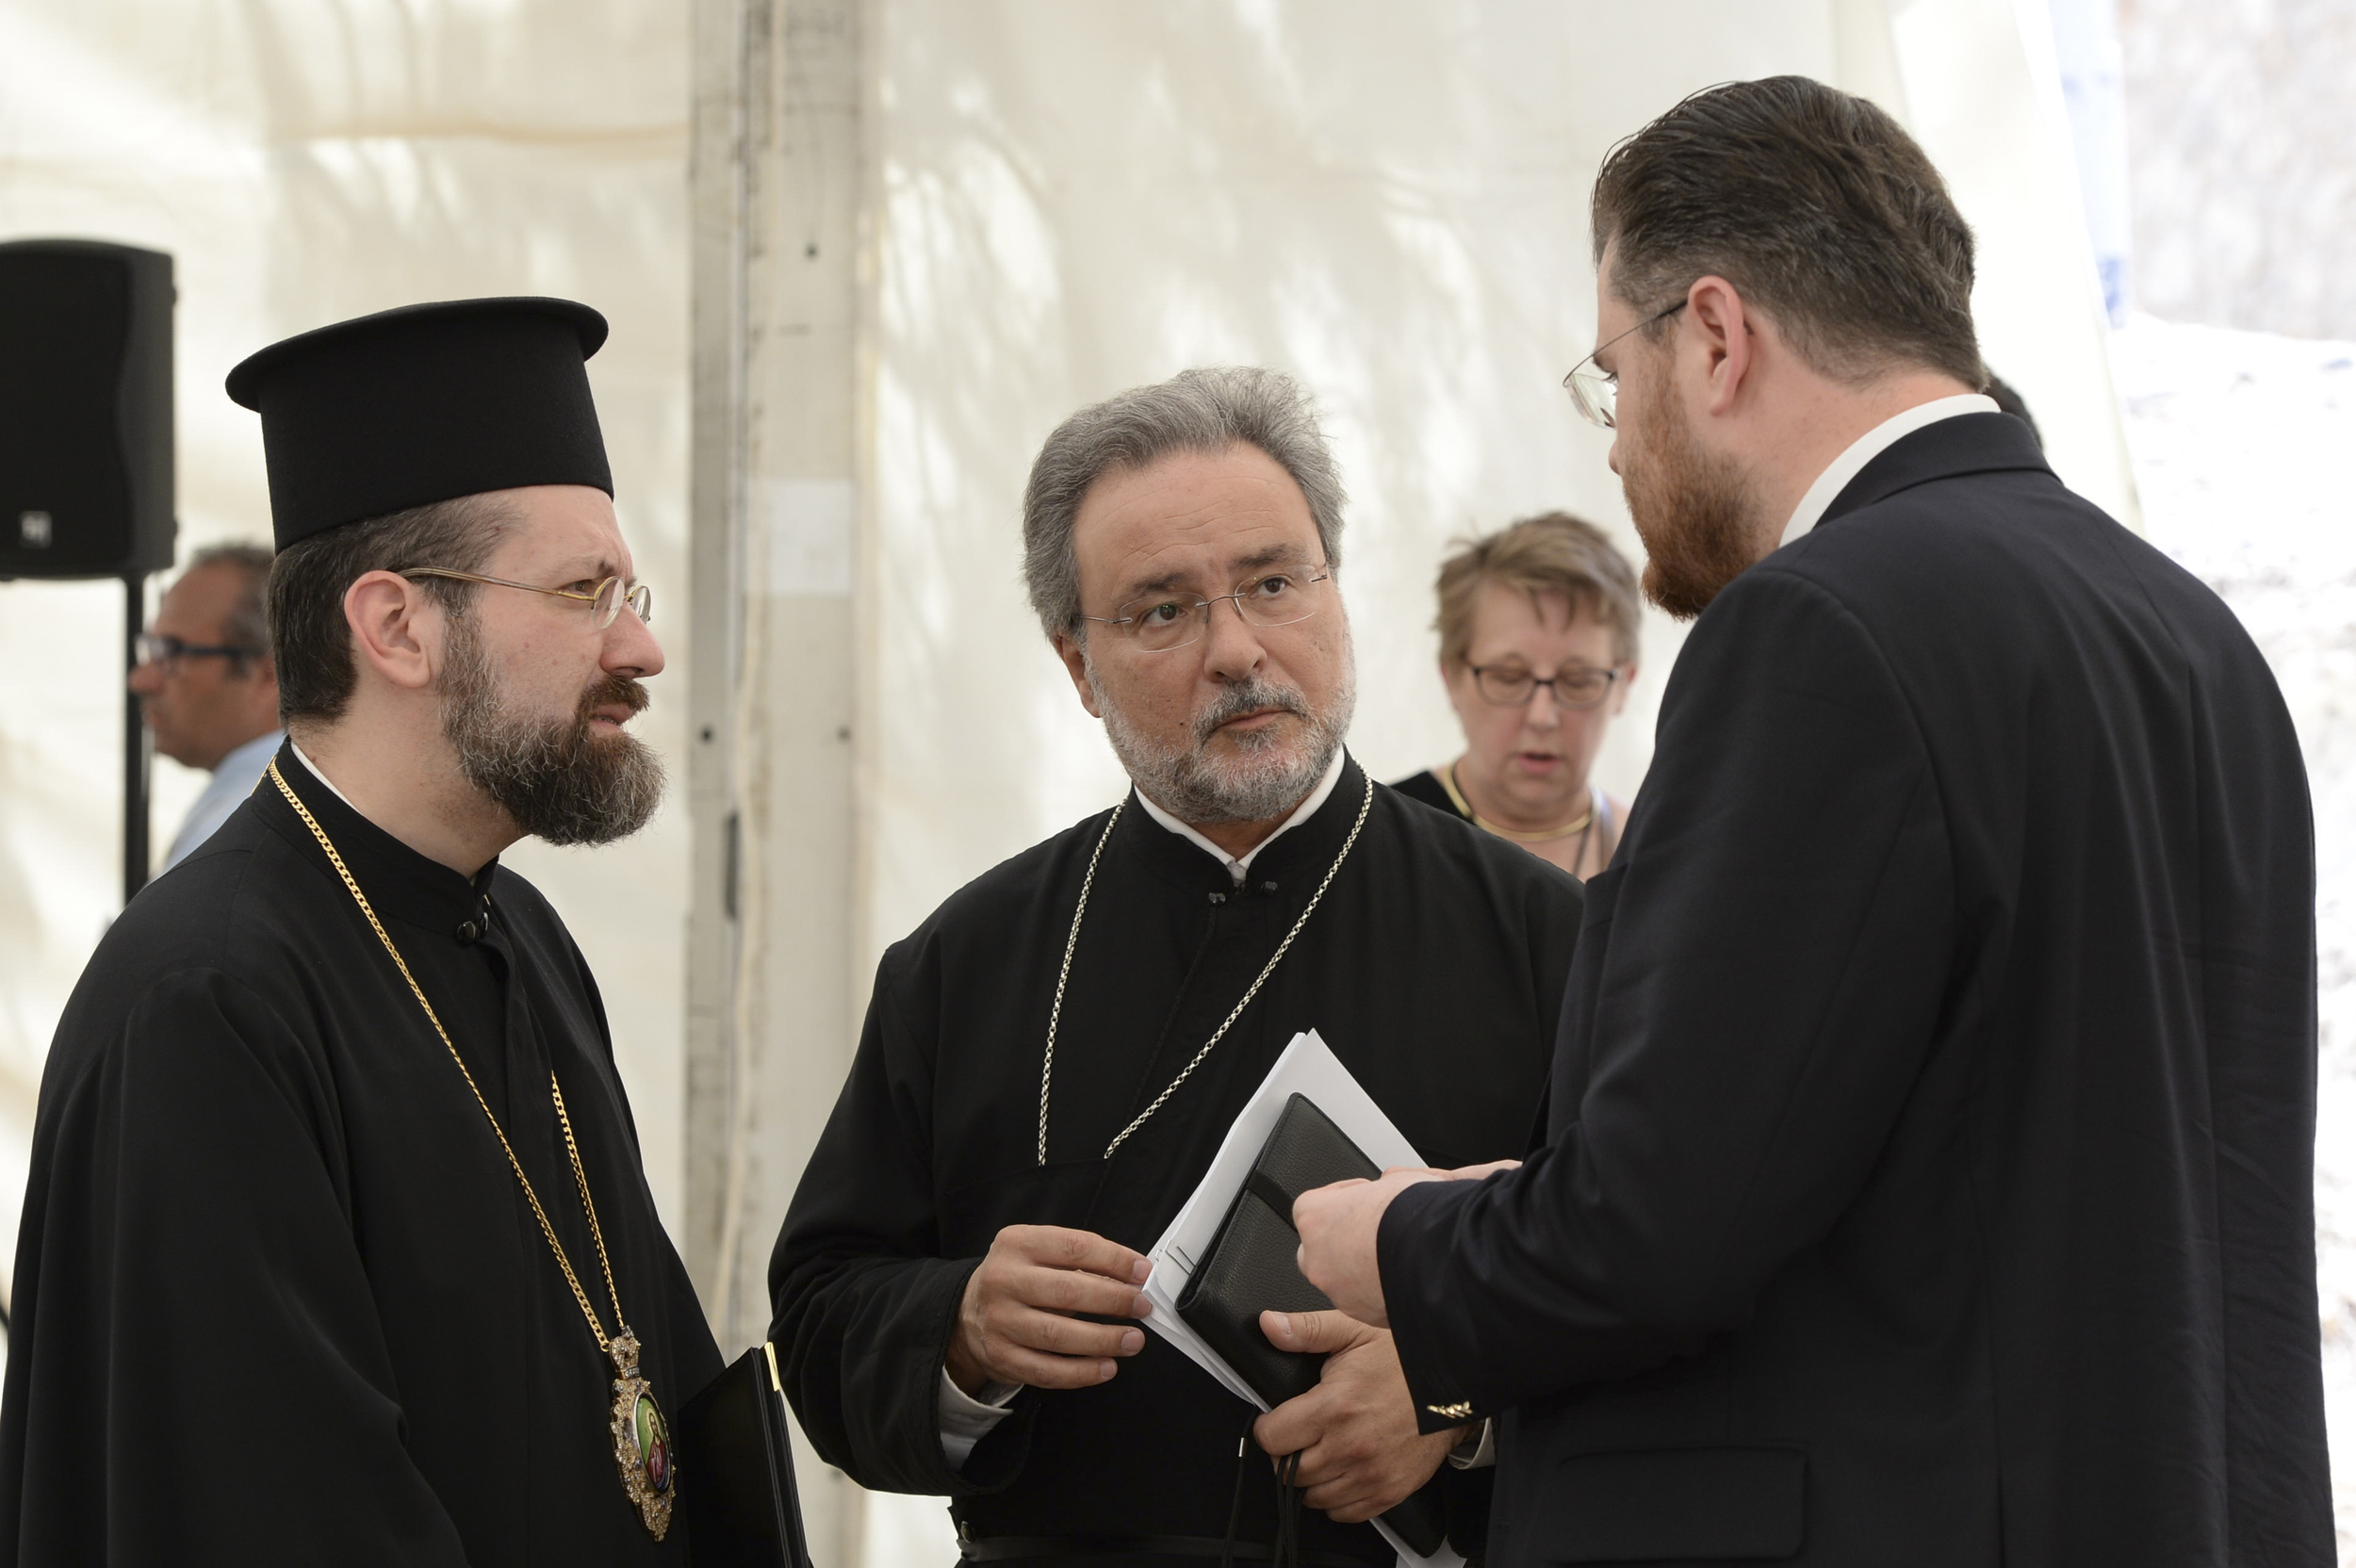 Archdeacon John Chryssavgis and Archbishop Job of Telemessos of the Ecumenical Patriarchate in conversation with Dr Ionut Mavrichi of the Press Office of the Patriarchate of Romania at the Press Briefing on the first day of the Holy and Great Council. PHOTO: © JOHN MINDALA.